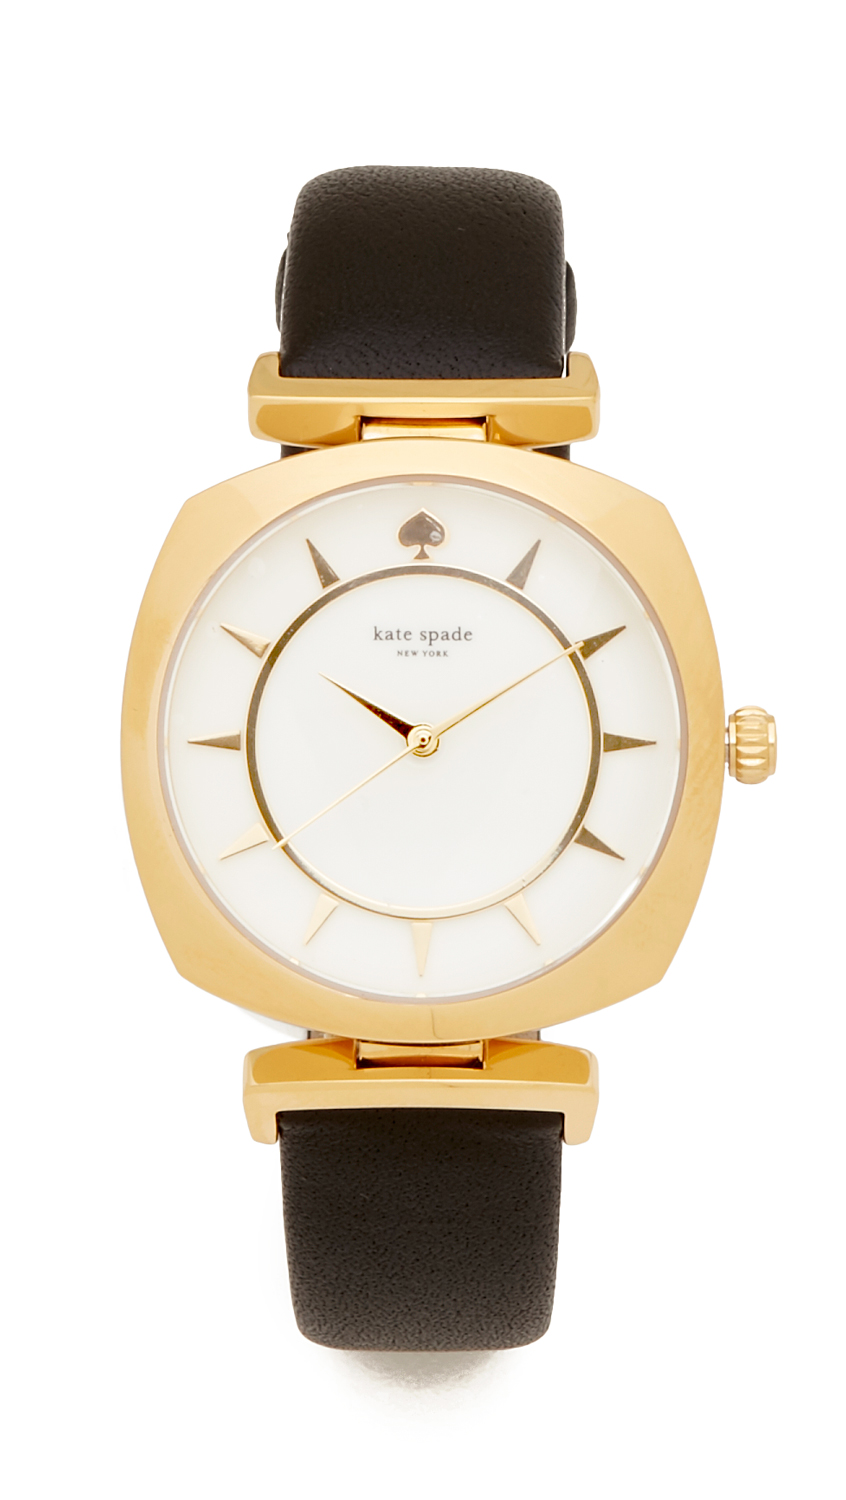 Kate Spade New York Barrow Watch - Black/Gold at Shopbop